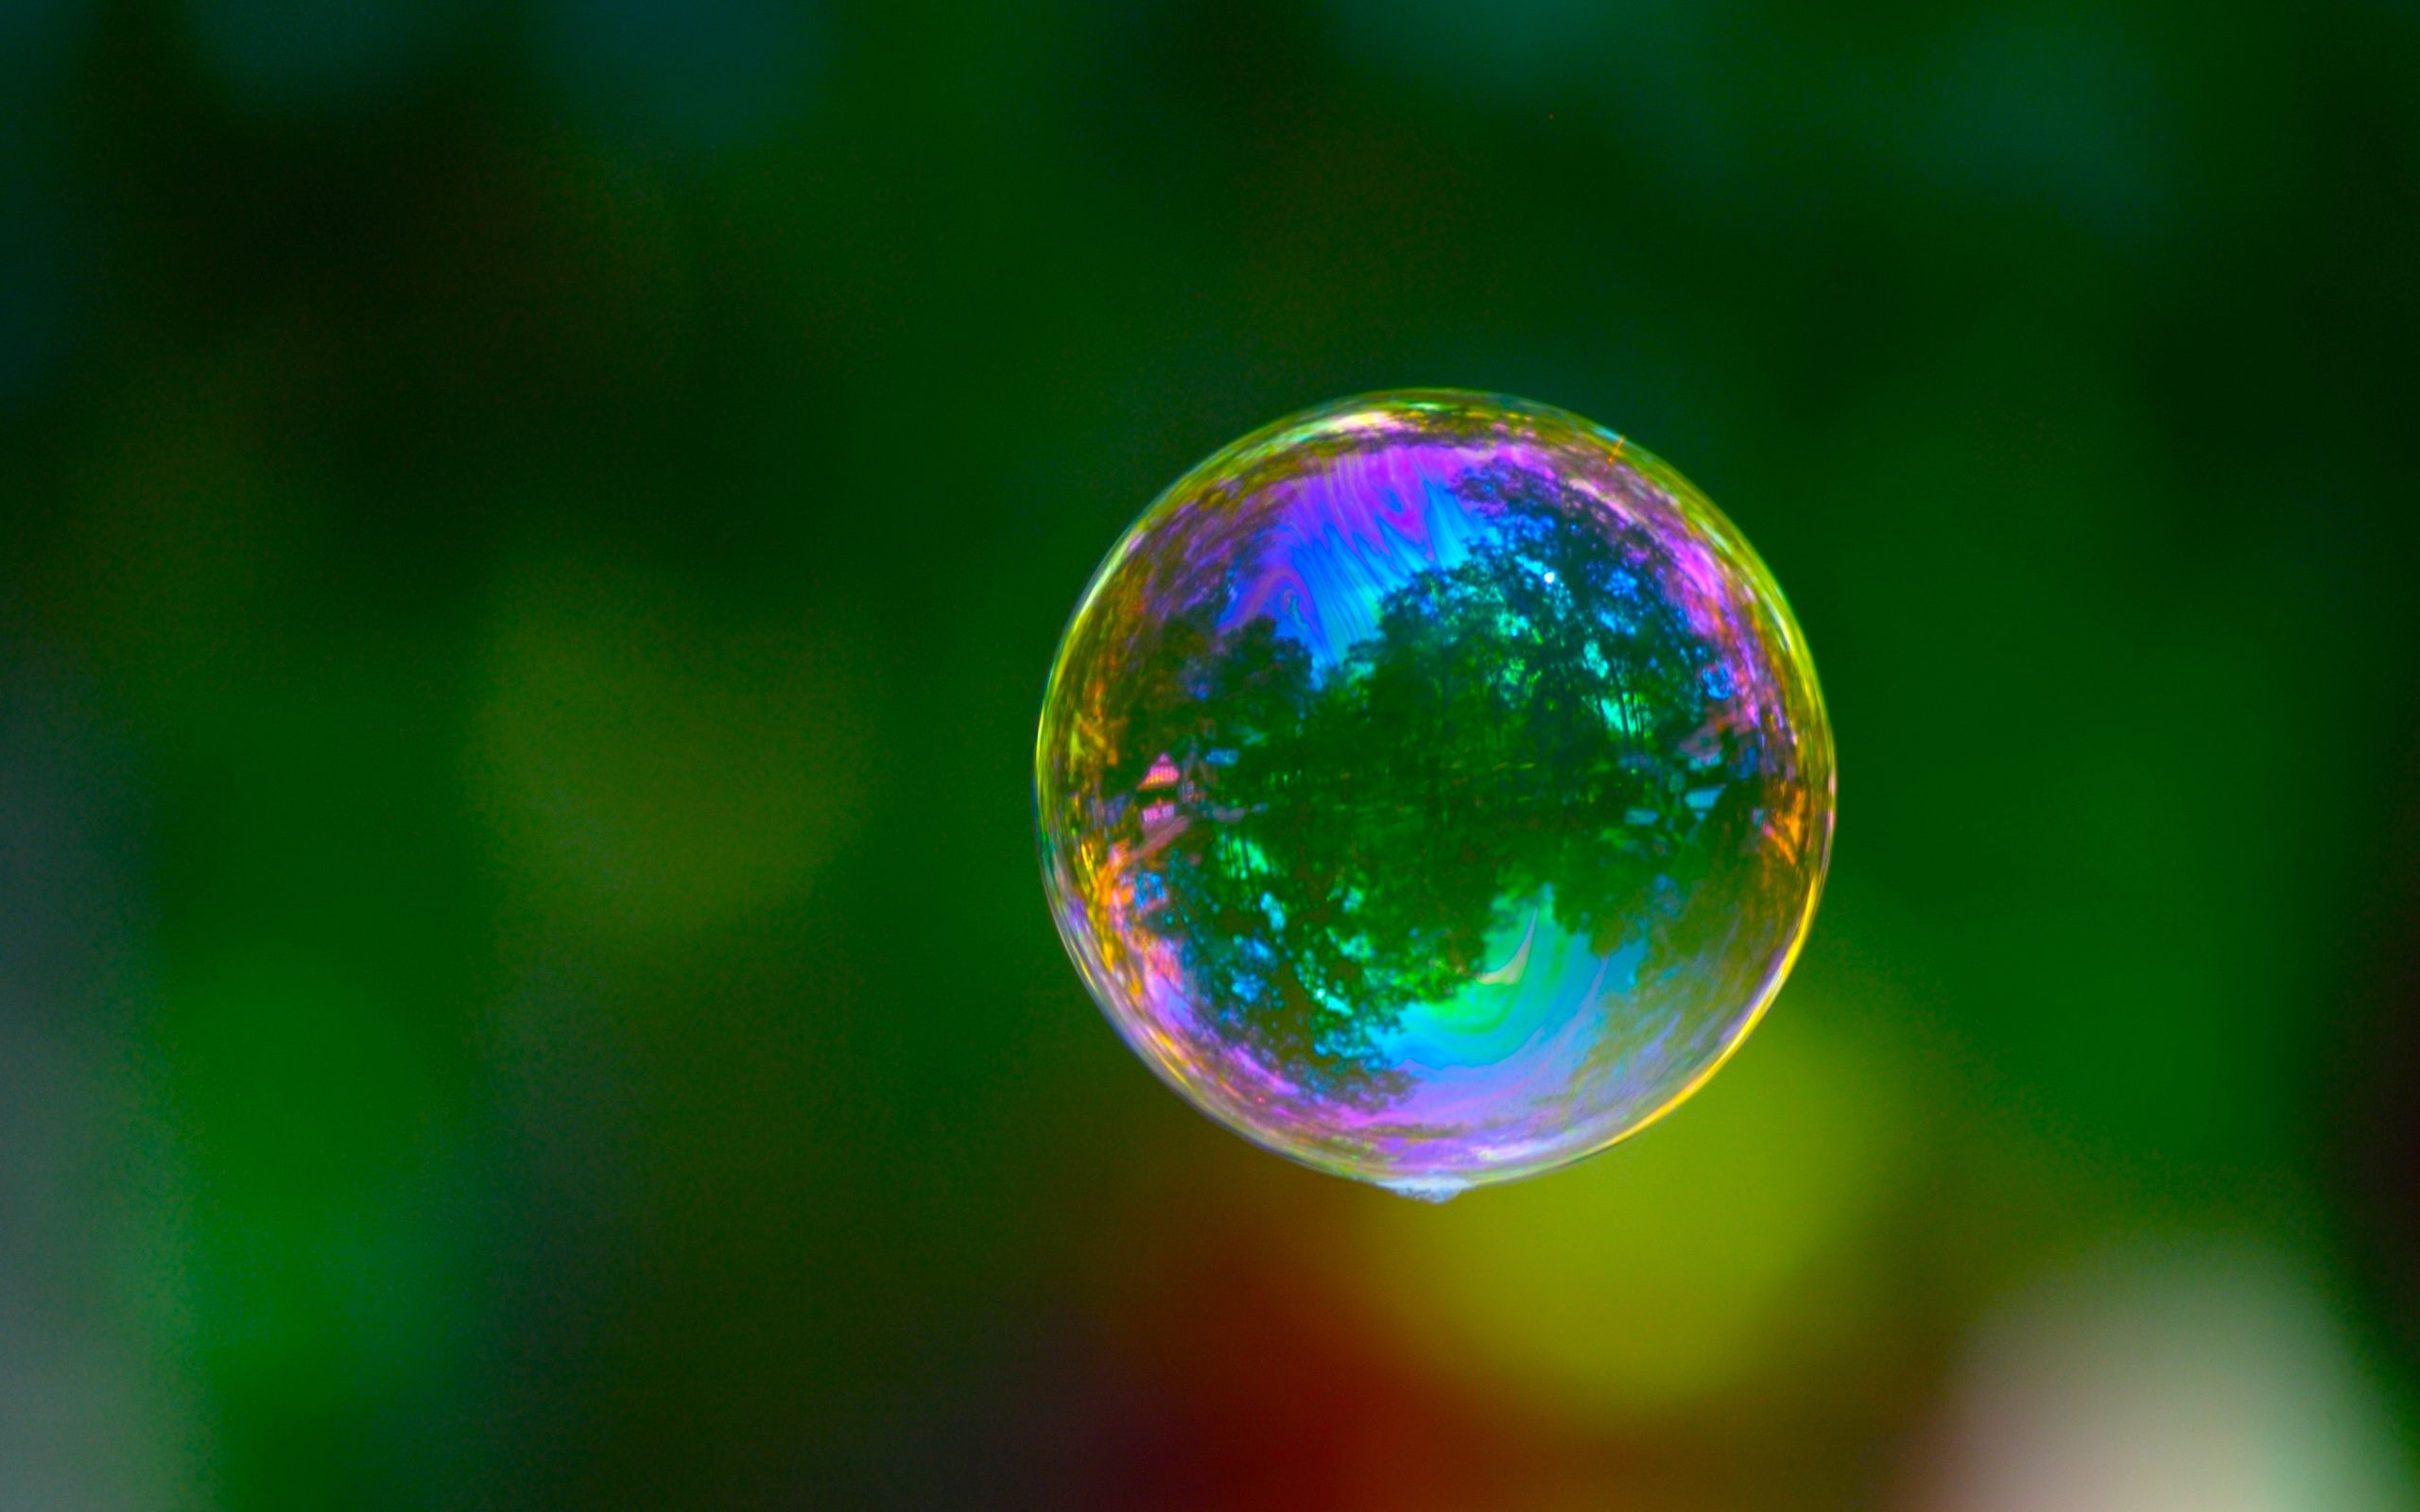 Every person lives in his or her own bubble, either by choice, ignorance or default. This occurs more often than not. Sometimes we intentionally get inside ...